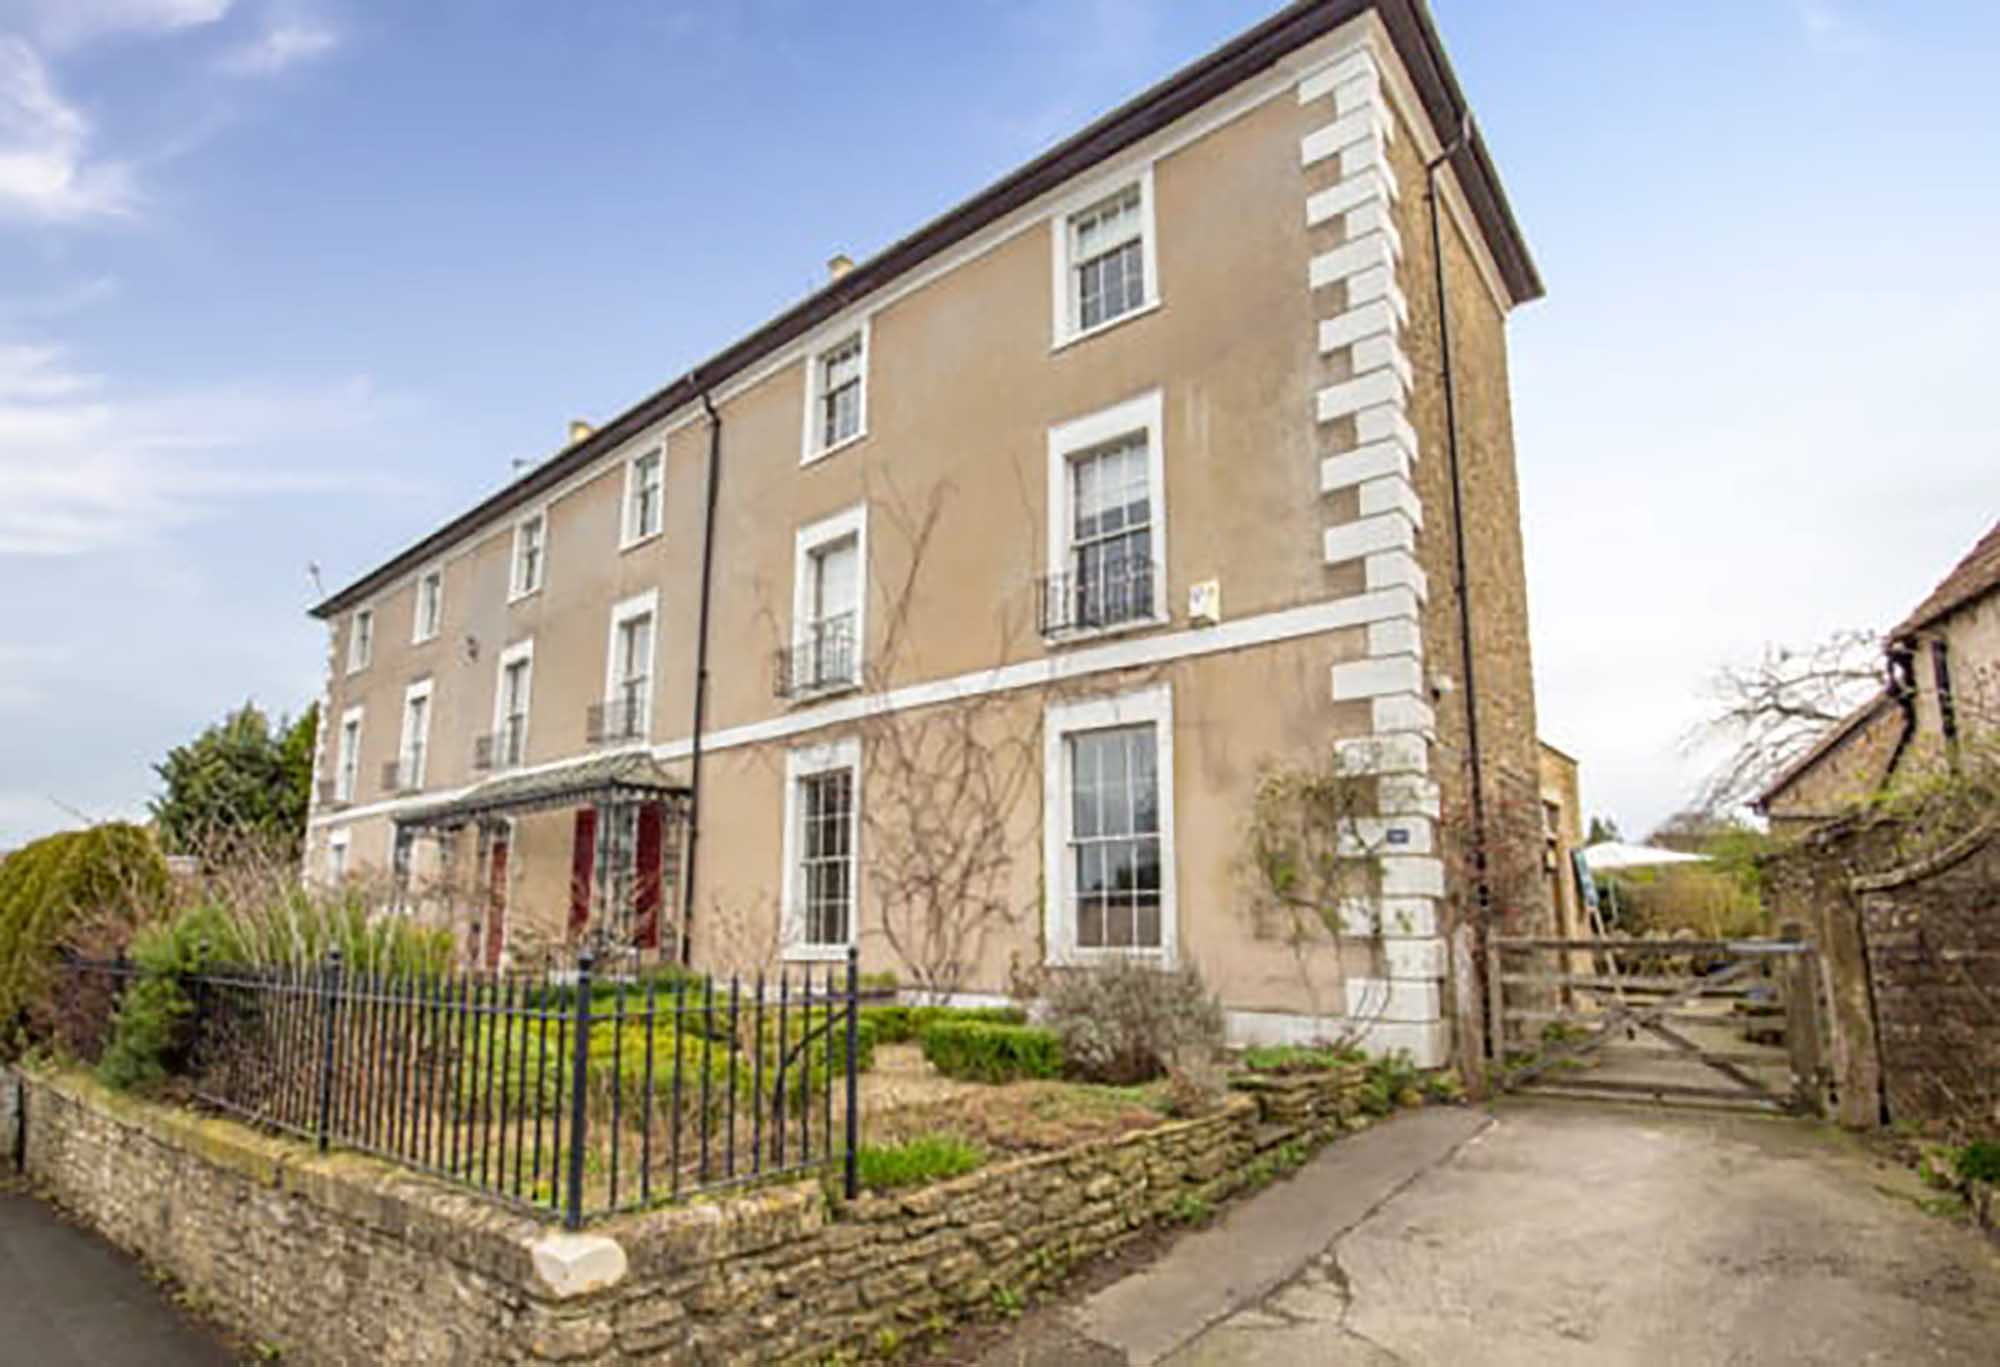 Stunning Georgian house with large garden and parking in central Frome.